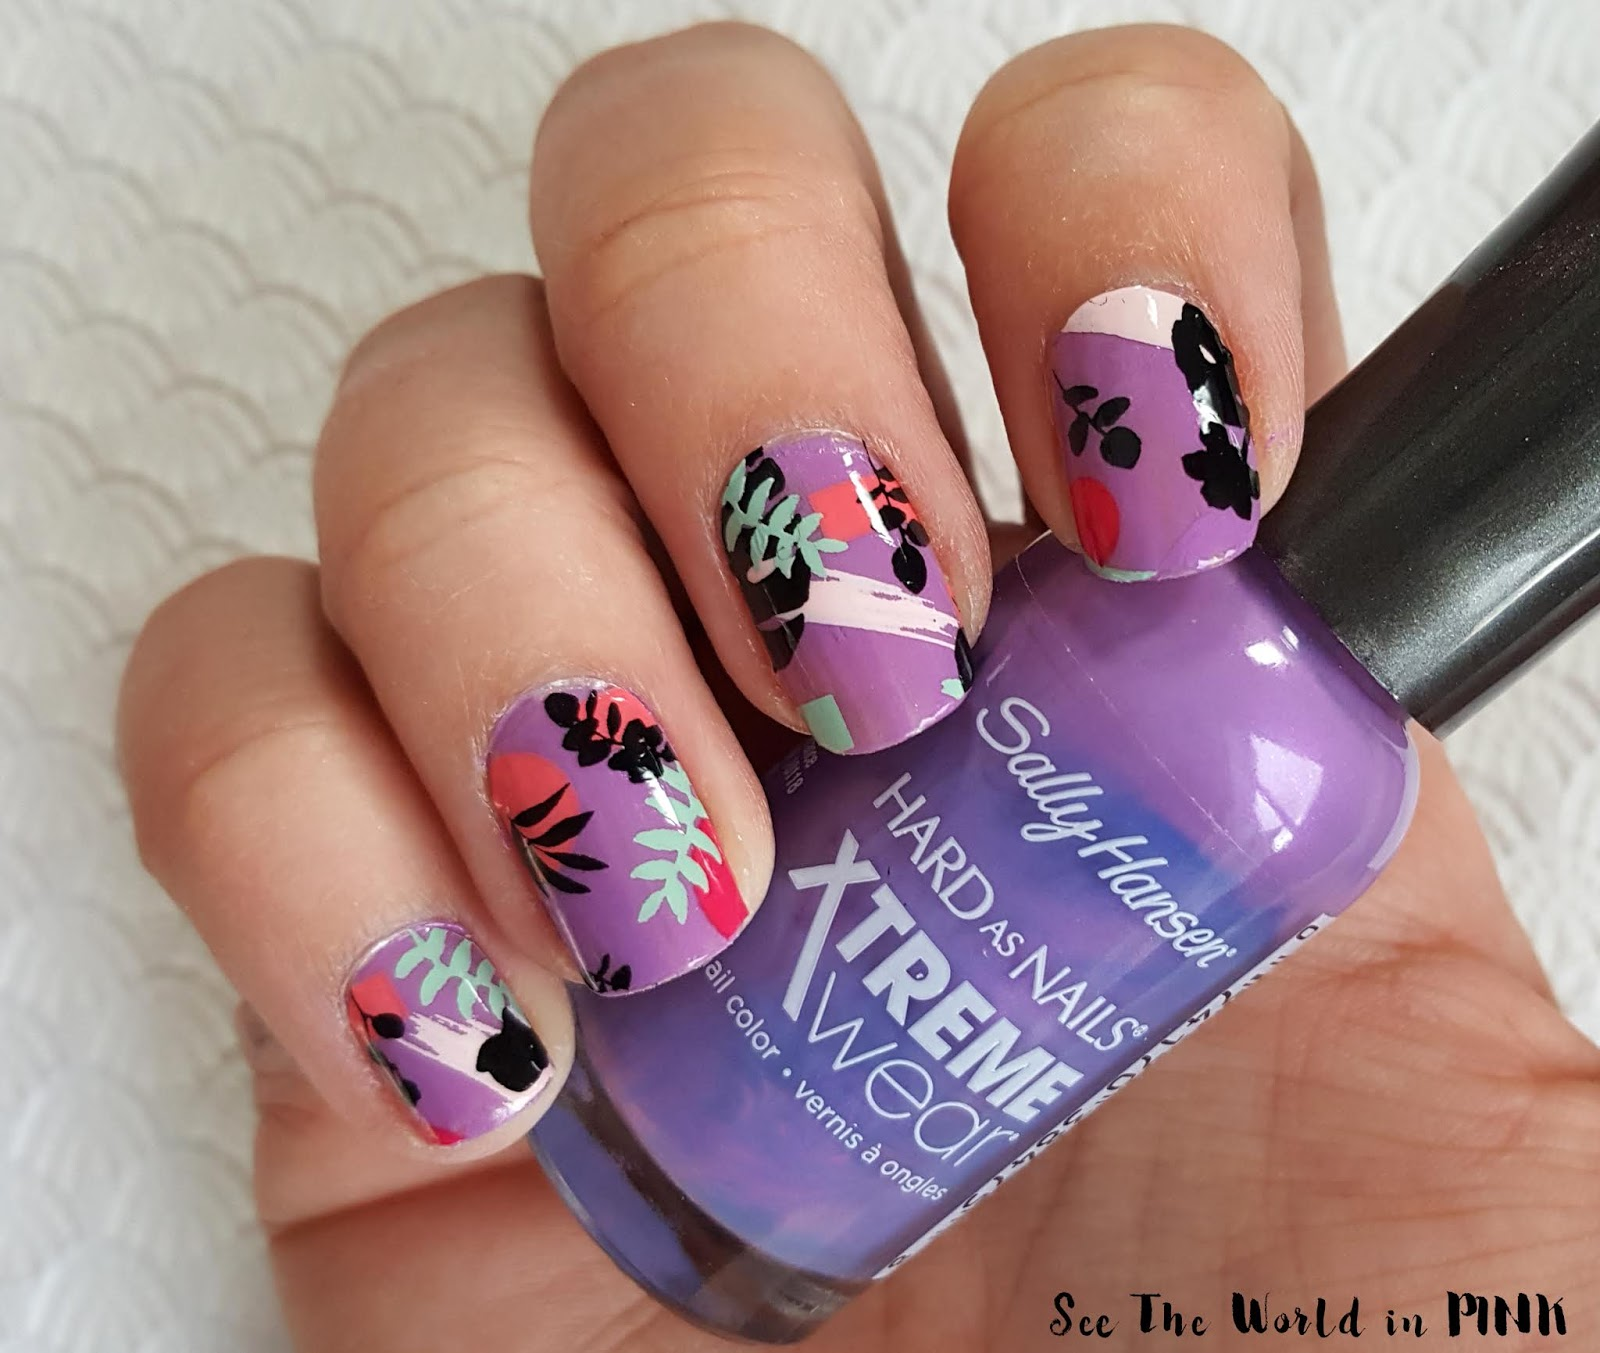 Manicure Monday - Purple Tropicana Nails!